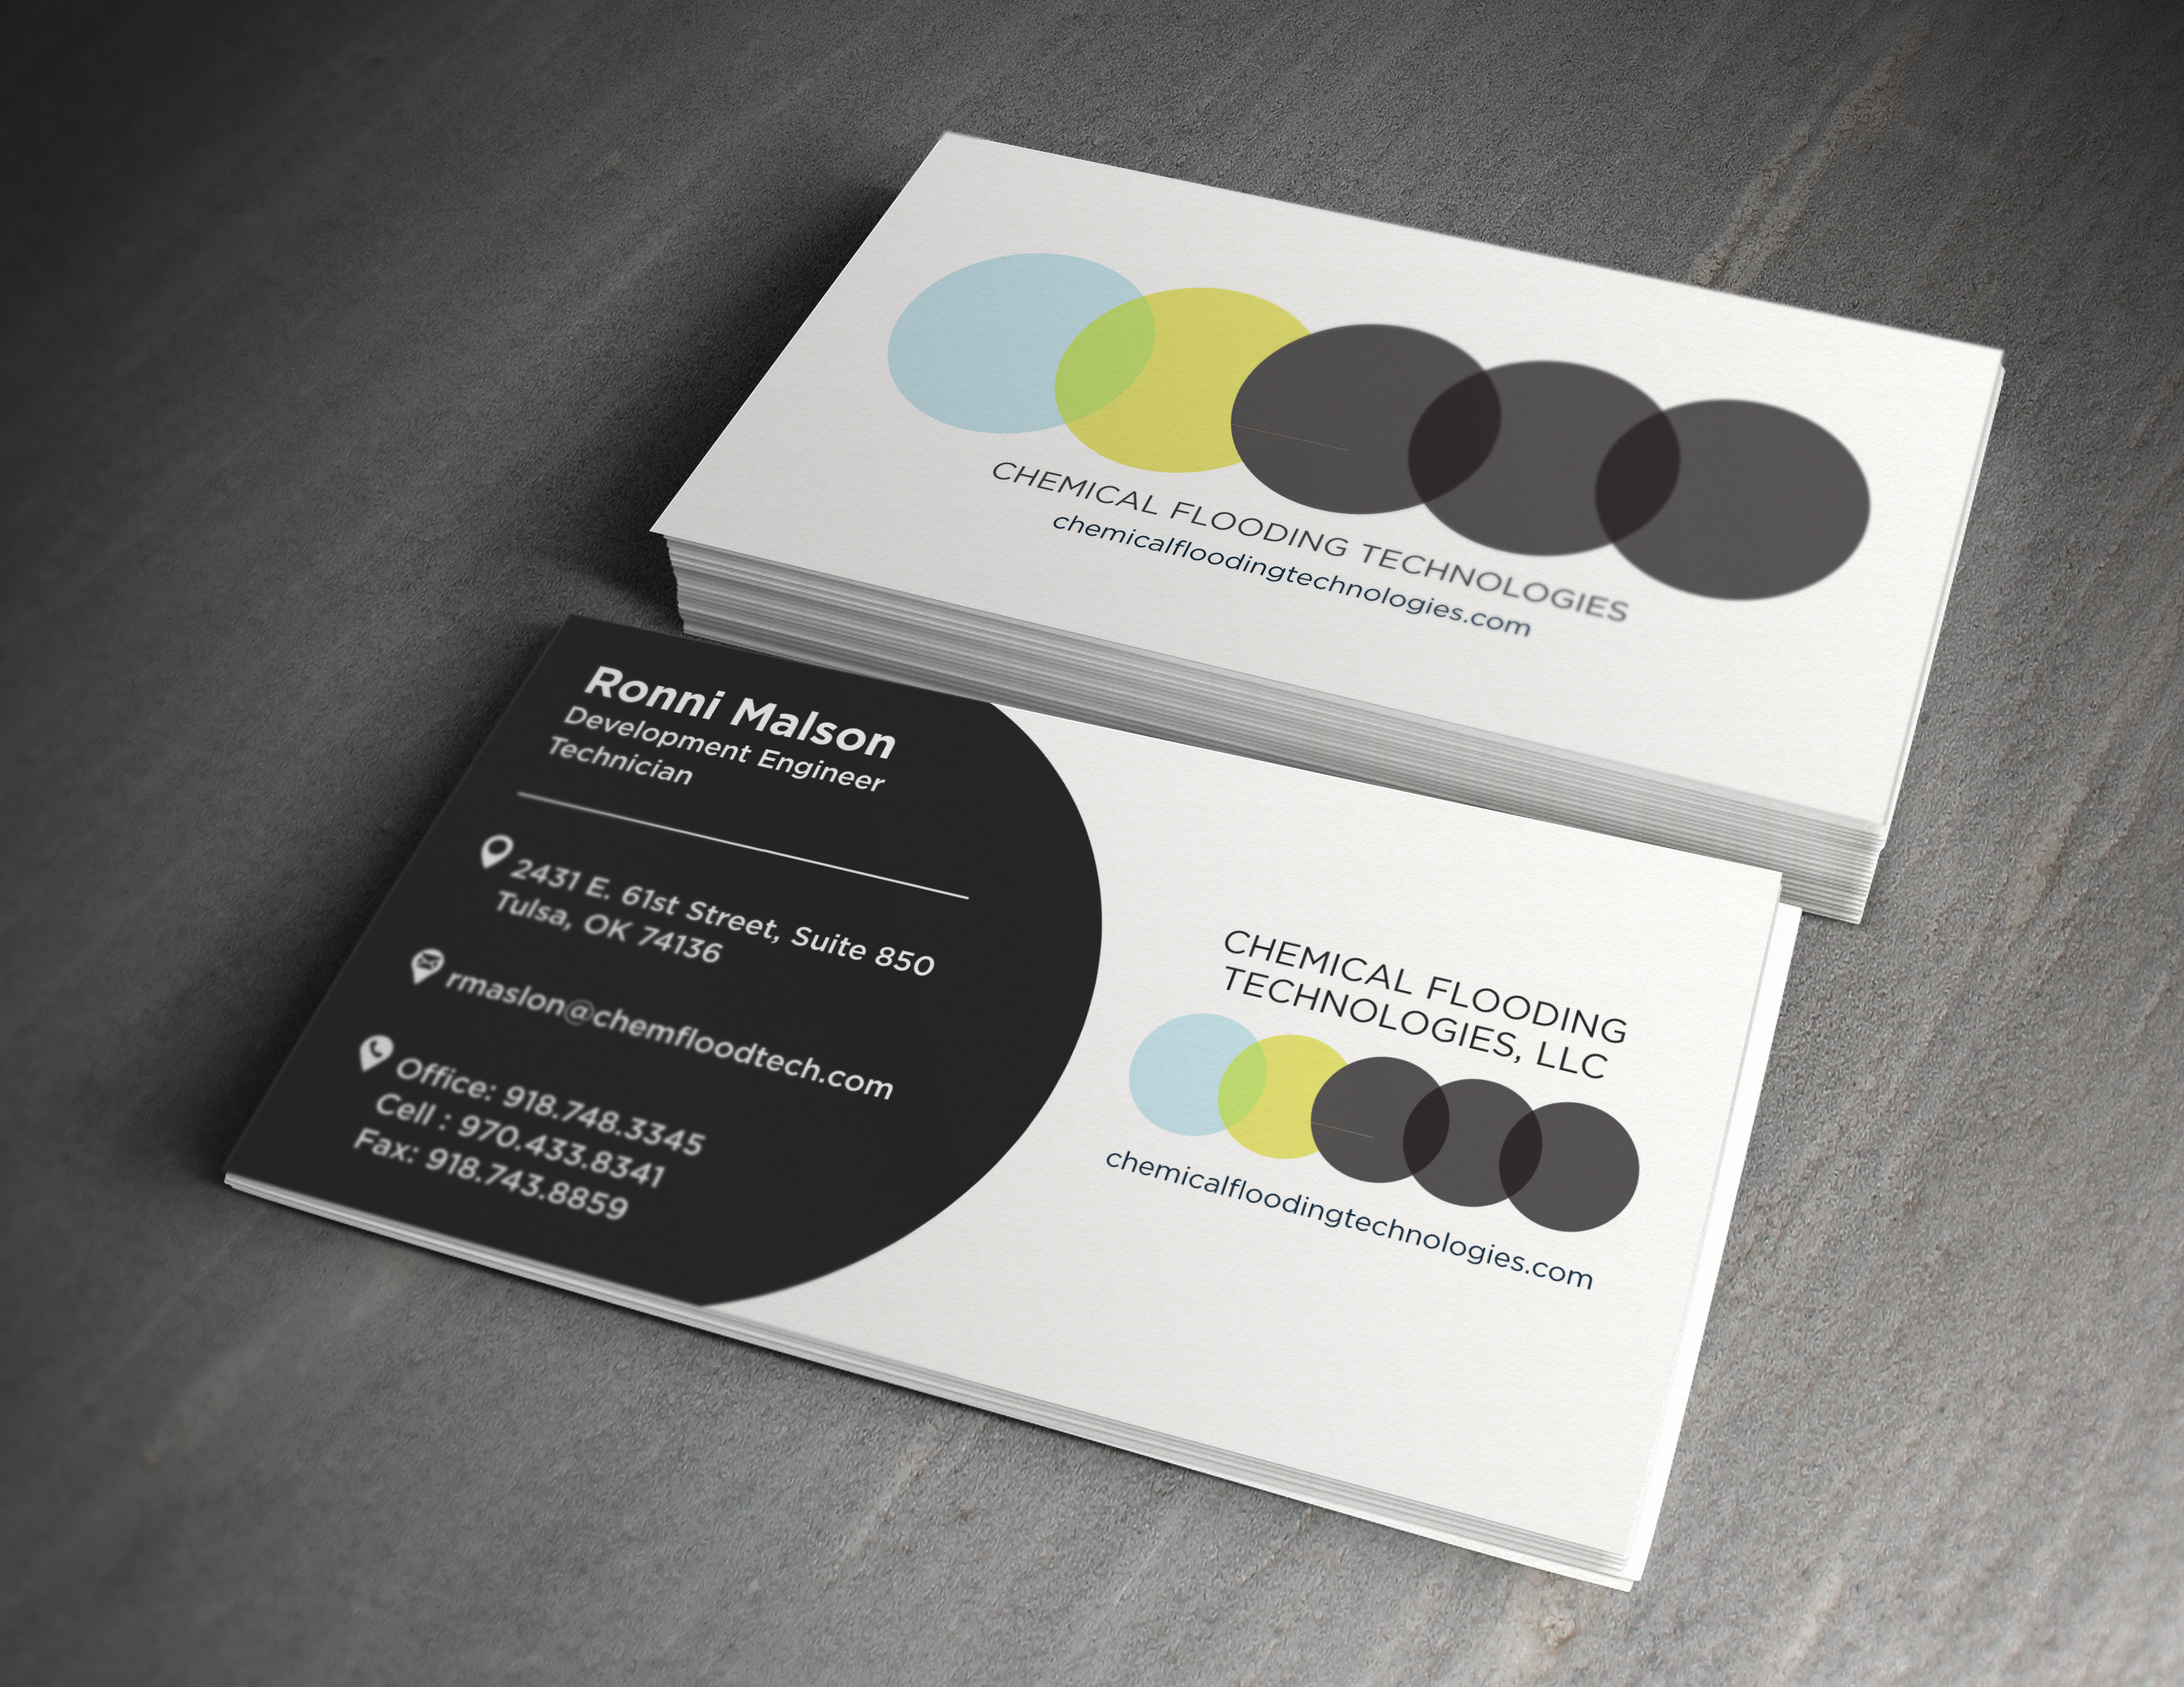 Corporate Business Cards –  Chemical Flooding Technologies